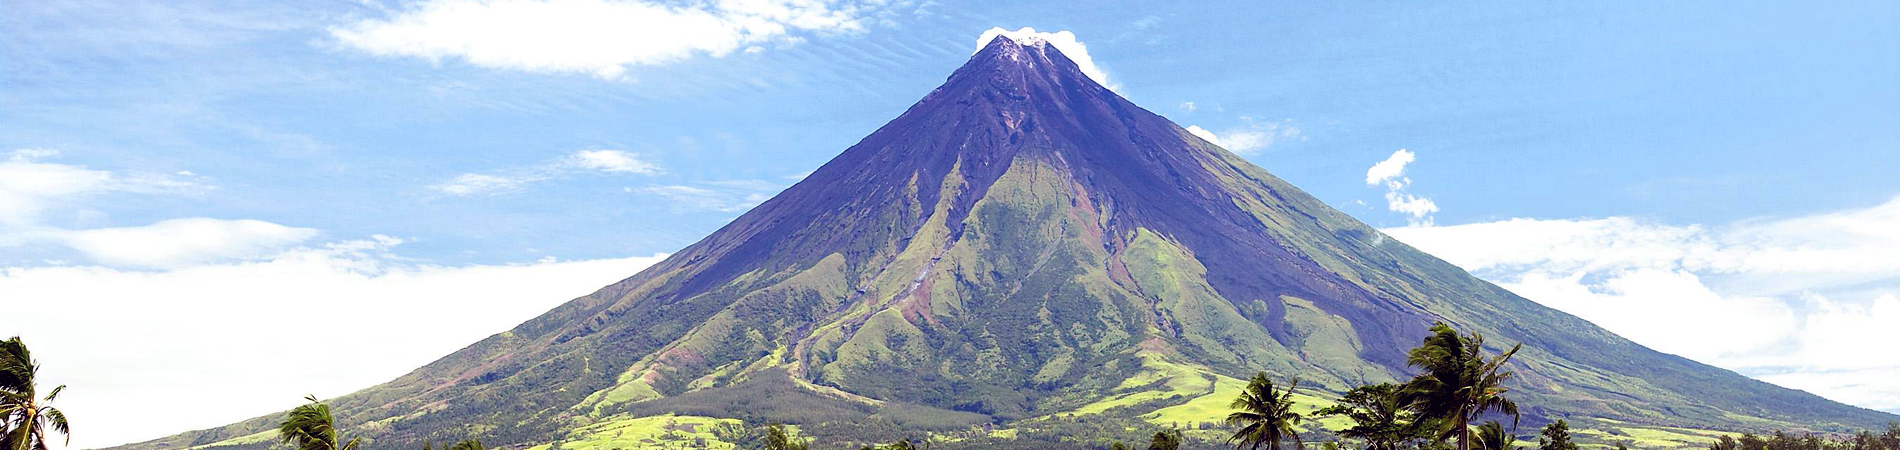 Philippines tourism PHI Mayon Volcano header